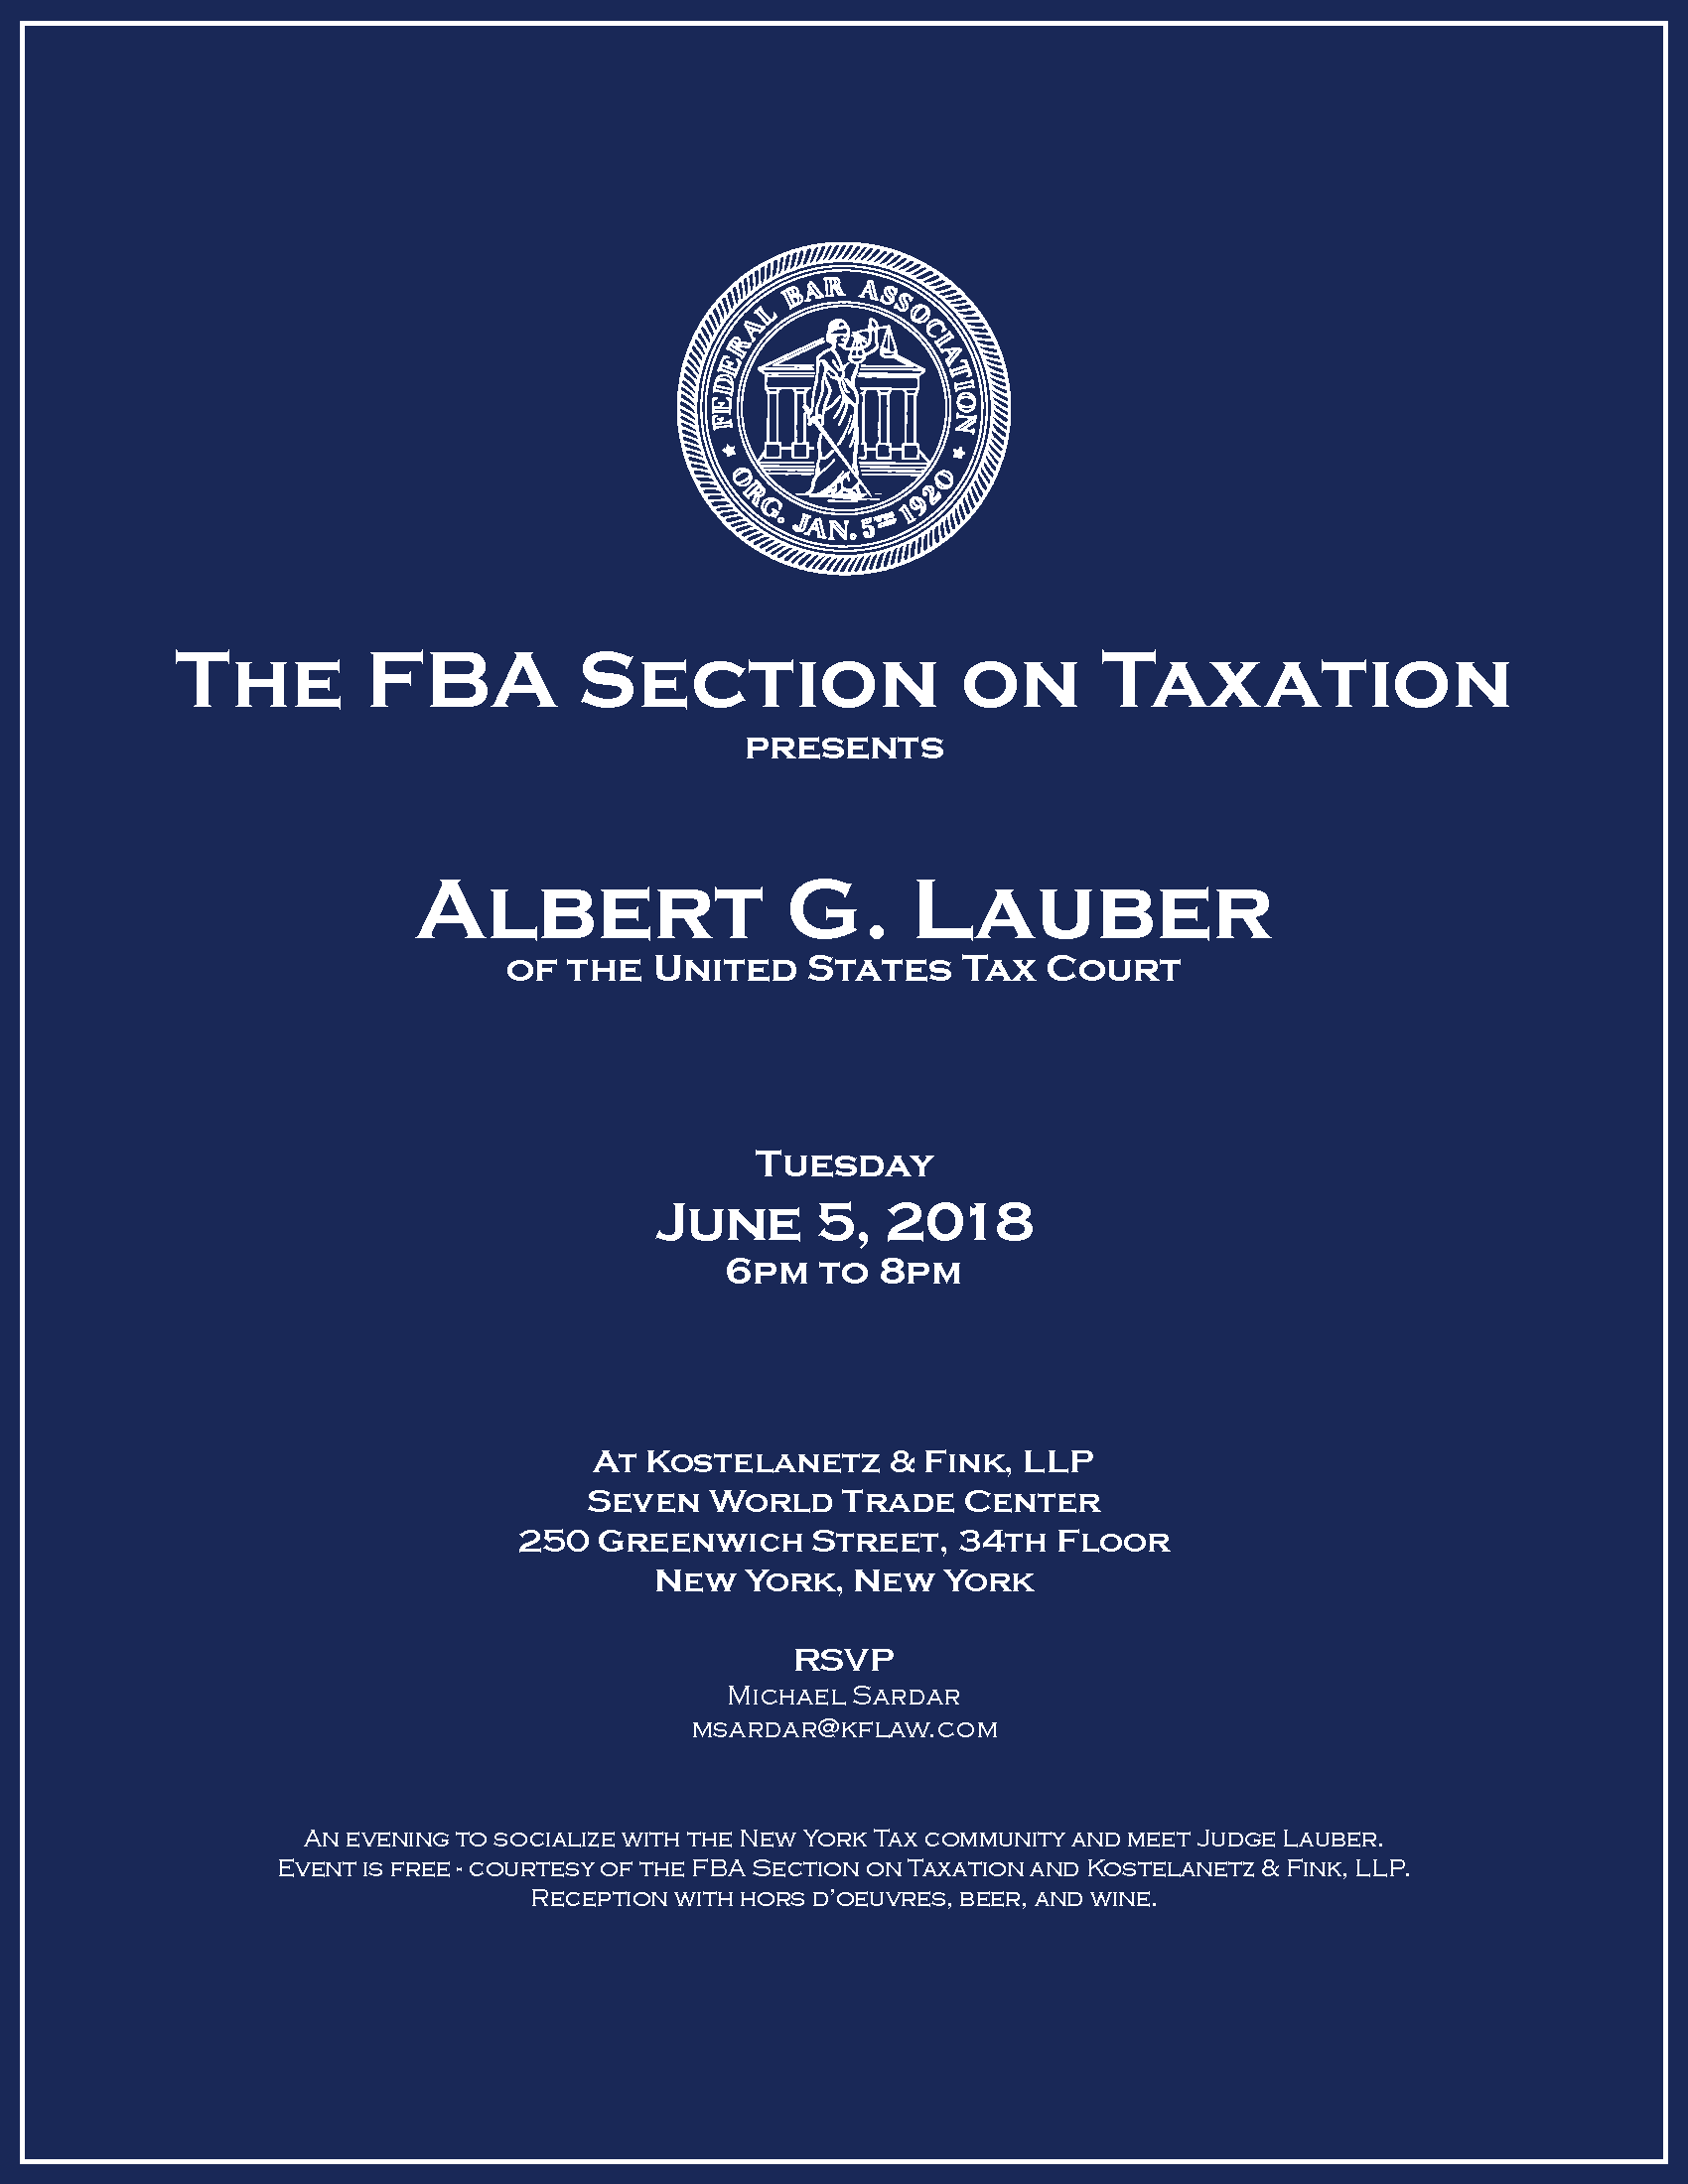 The FBA Section On Taxation presents Albert G. Lauber Of The United States Tax Court